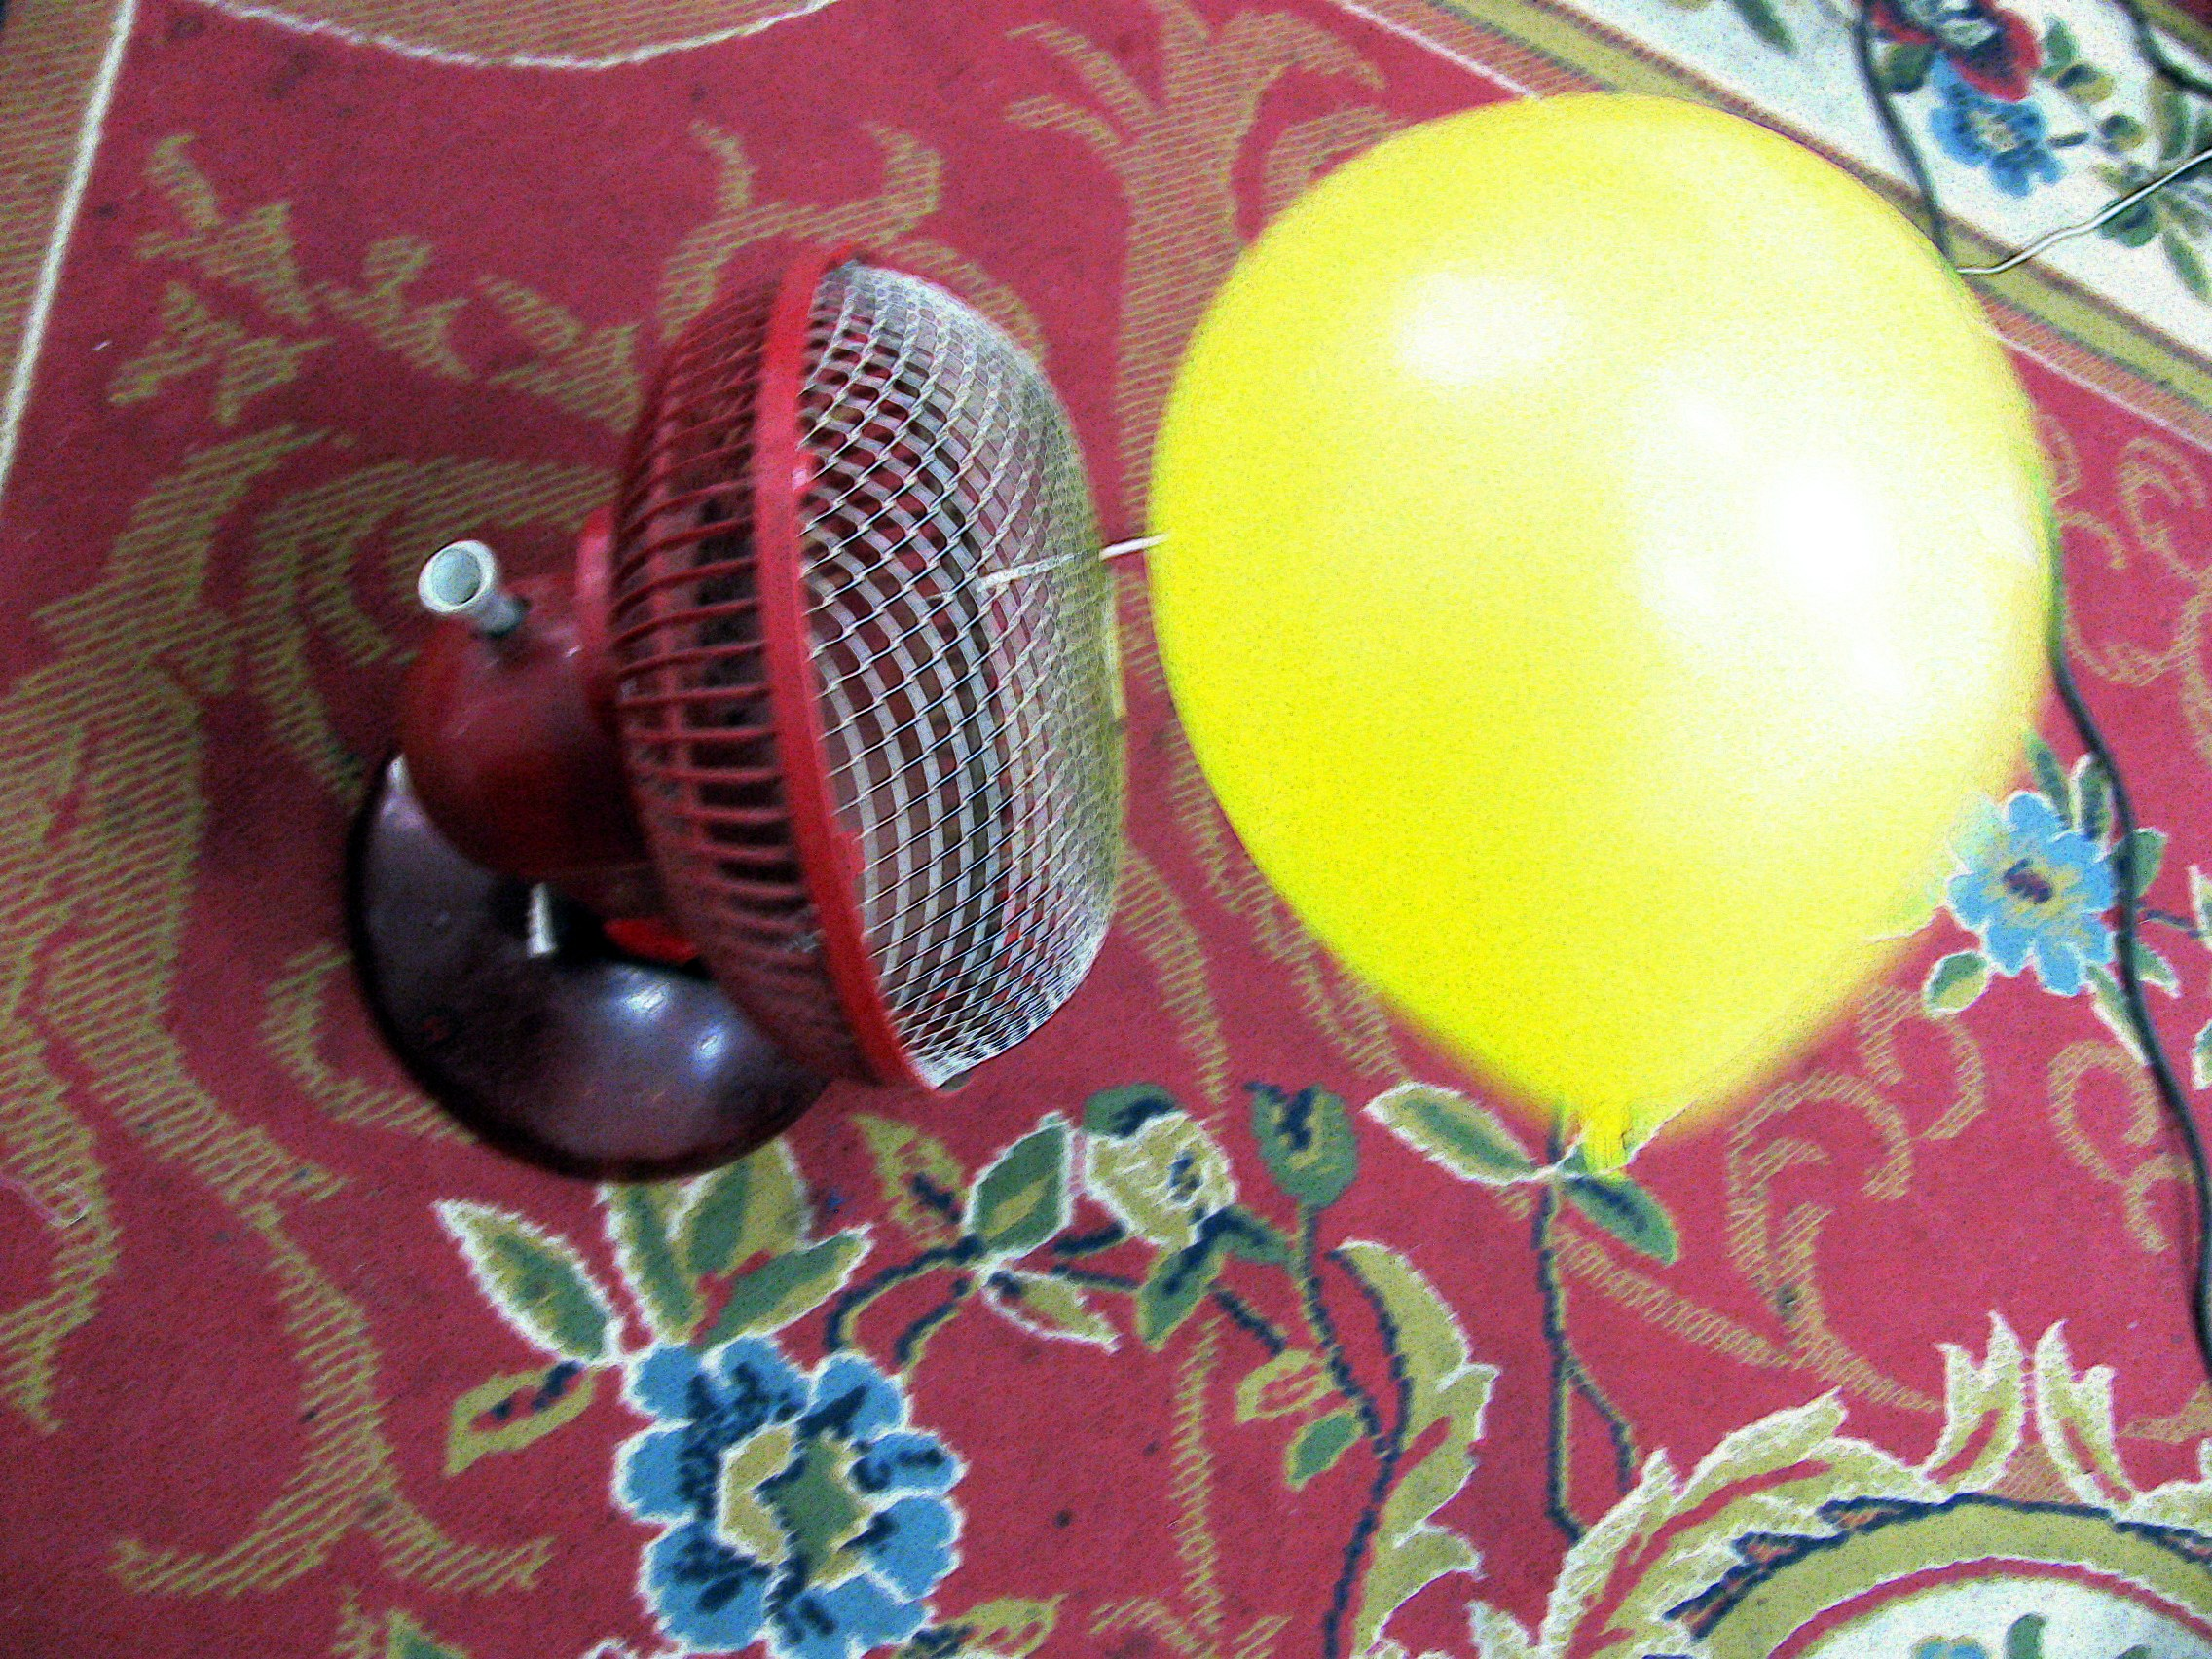 Controlled Direction of Fan Captured Balloon